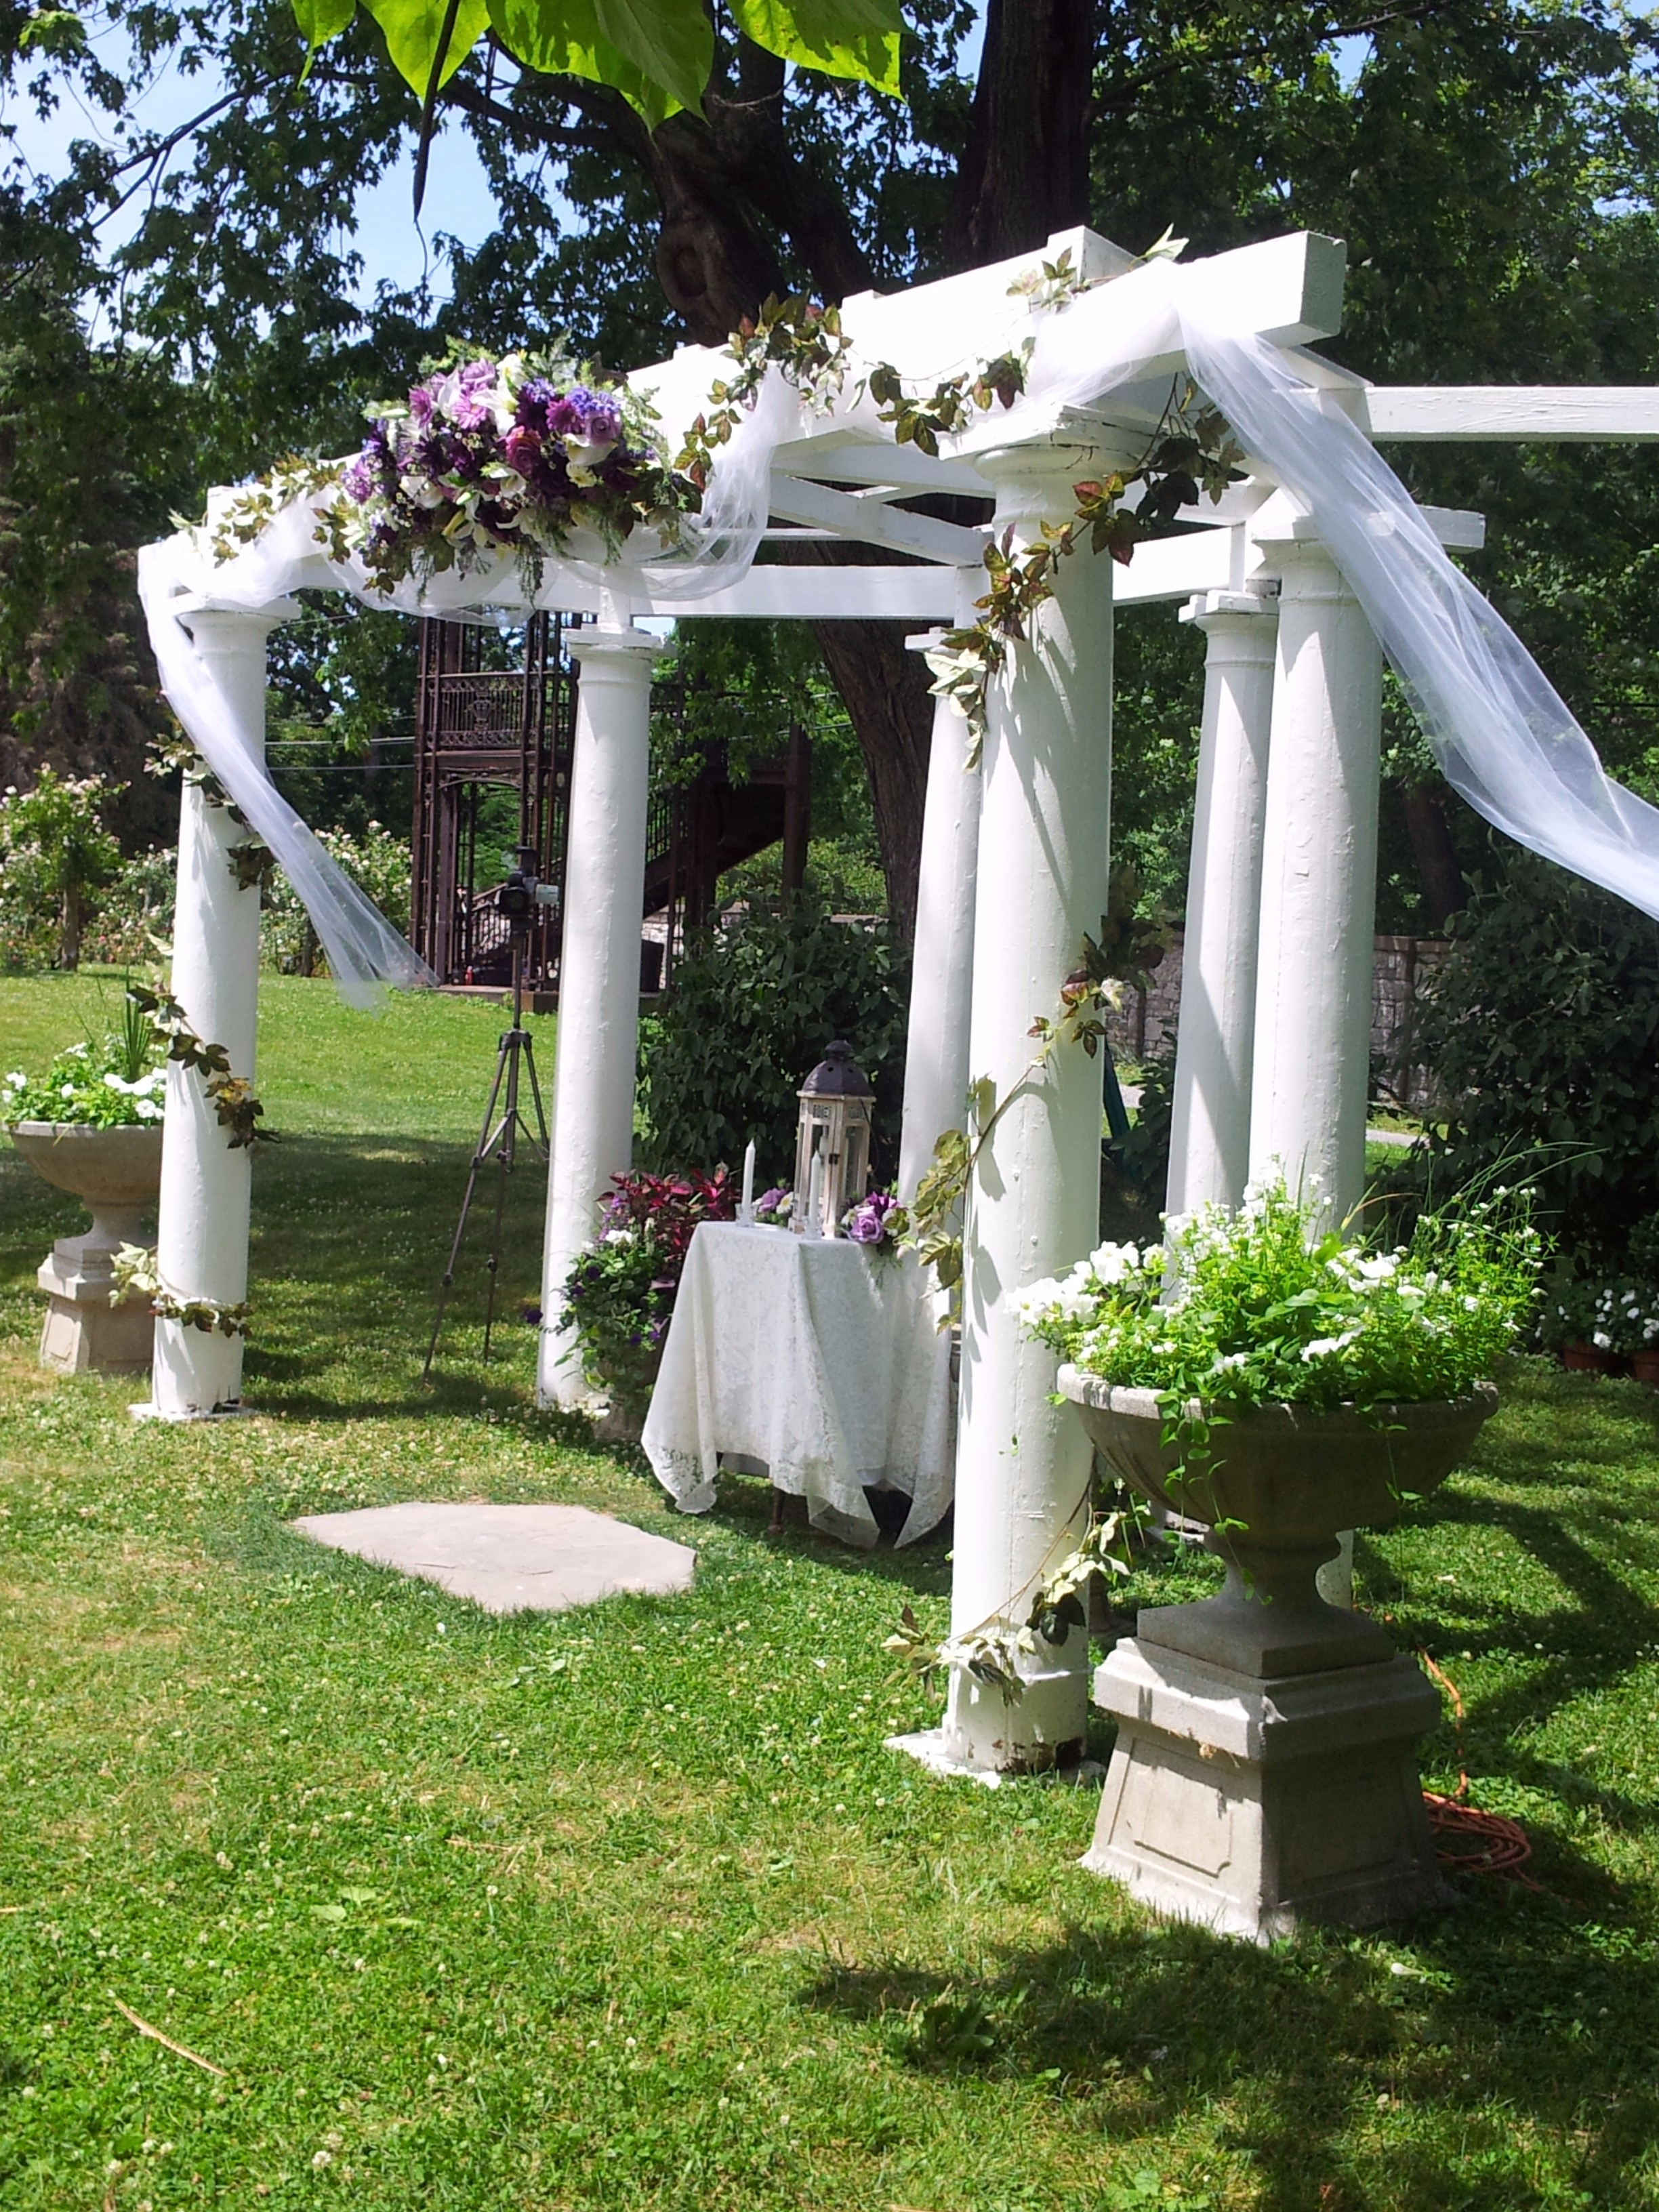 wedding-pergola-decorations_8164815488_o